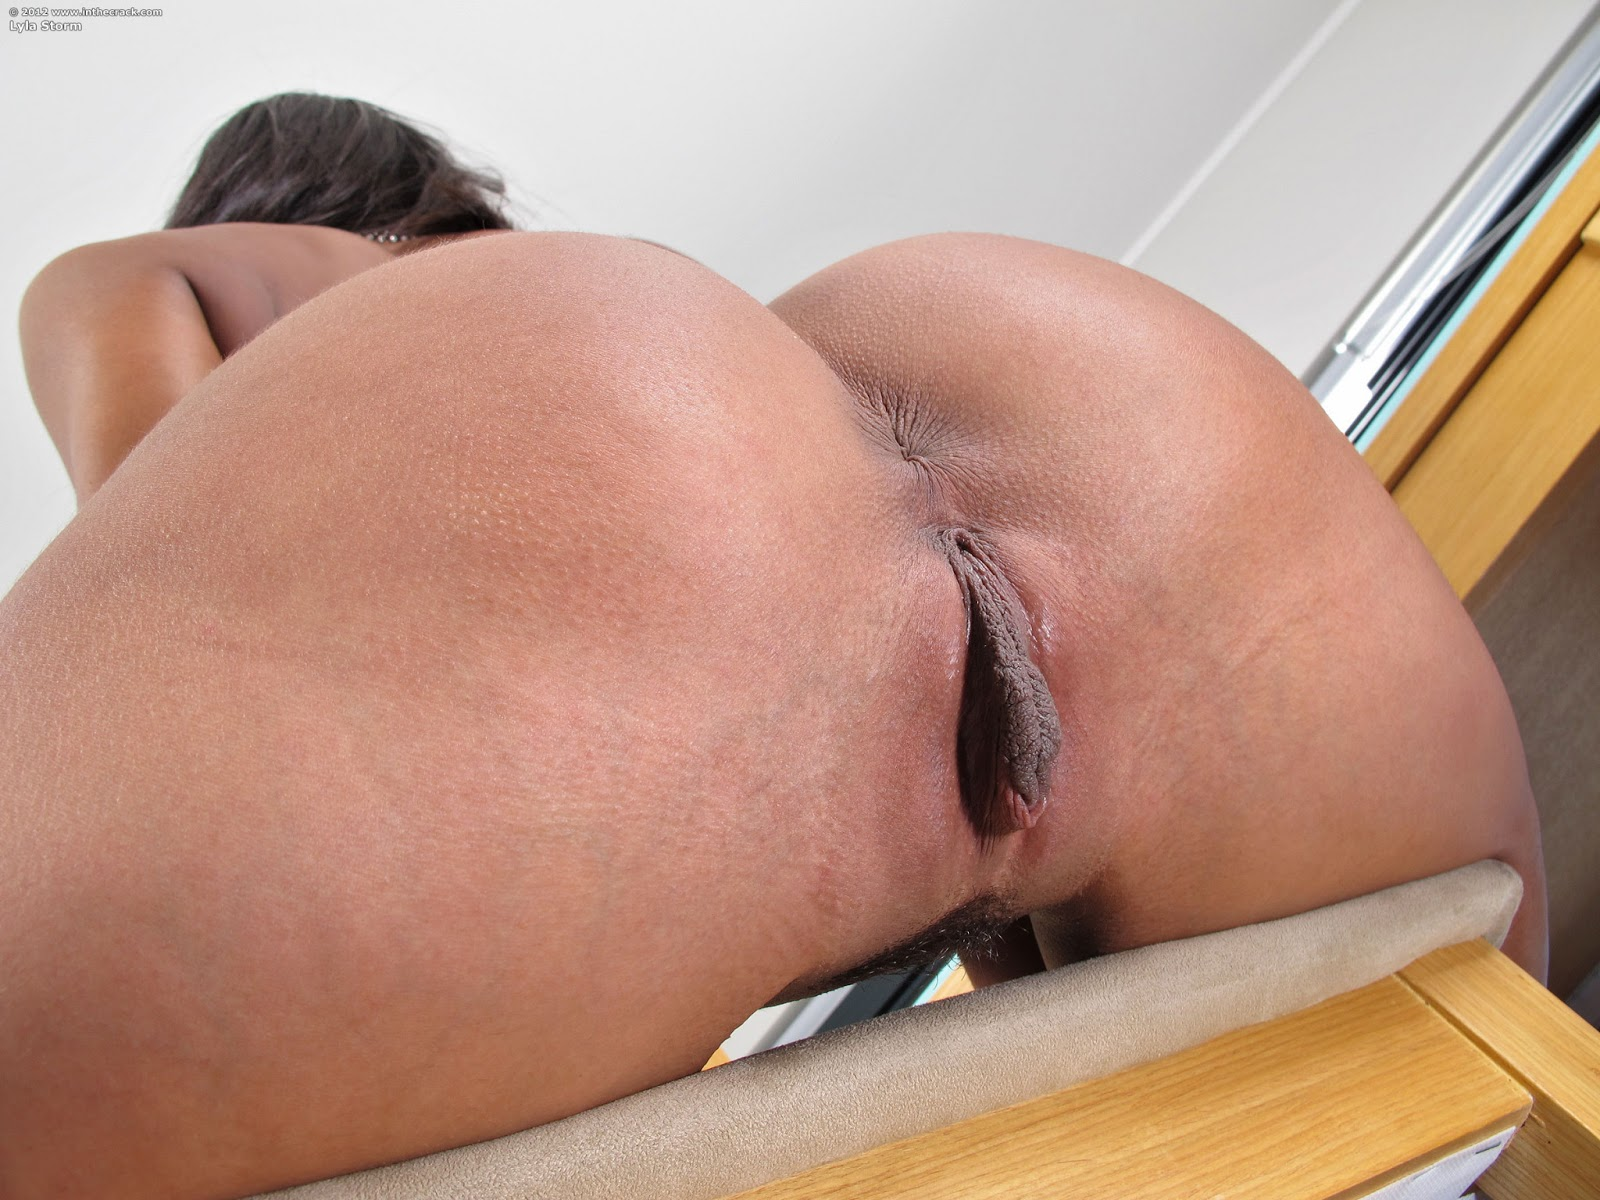 Latina anal sex watch now